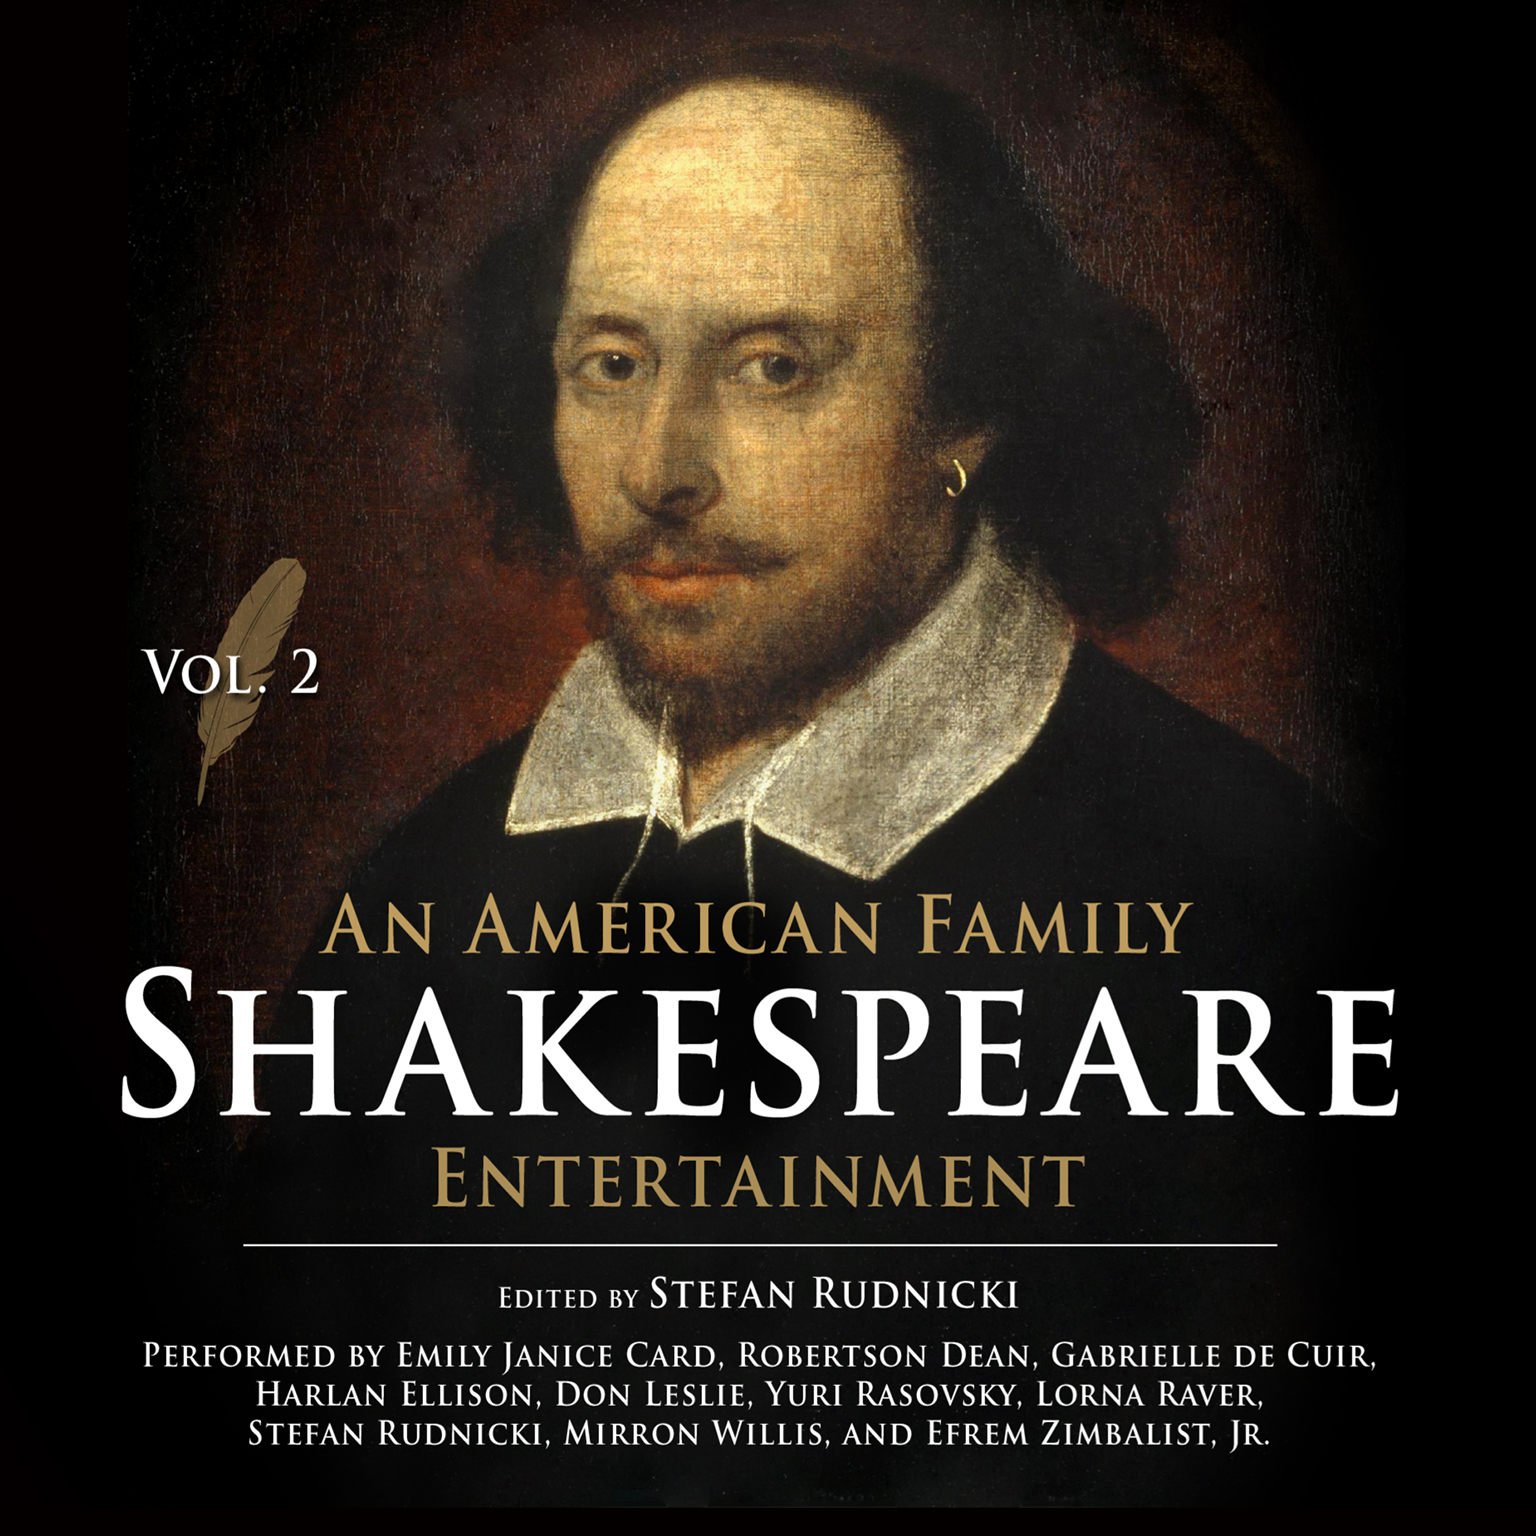 Printable An American Family Shakespeare Entertainment, Vol. 2 Audiobook Cover Art